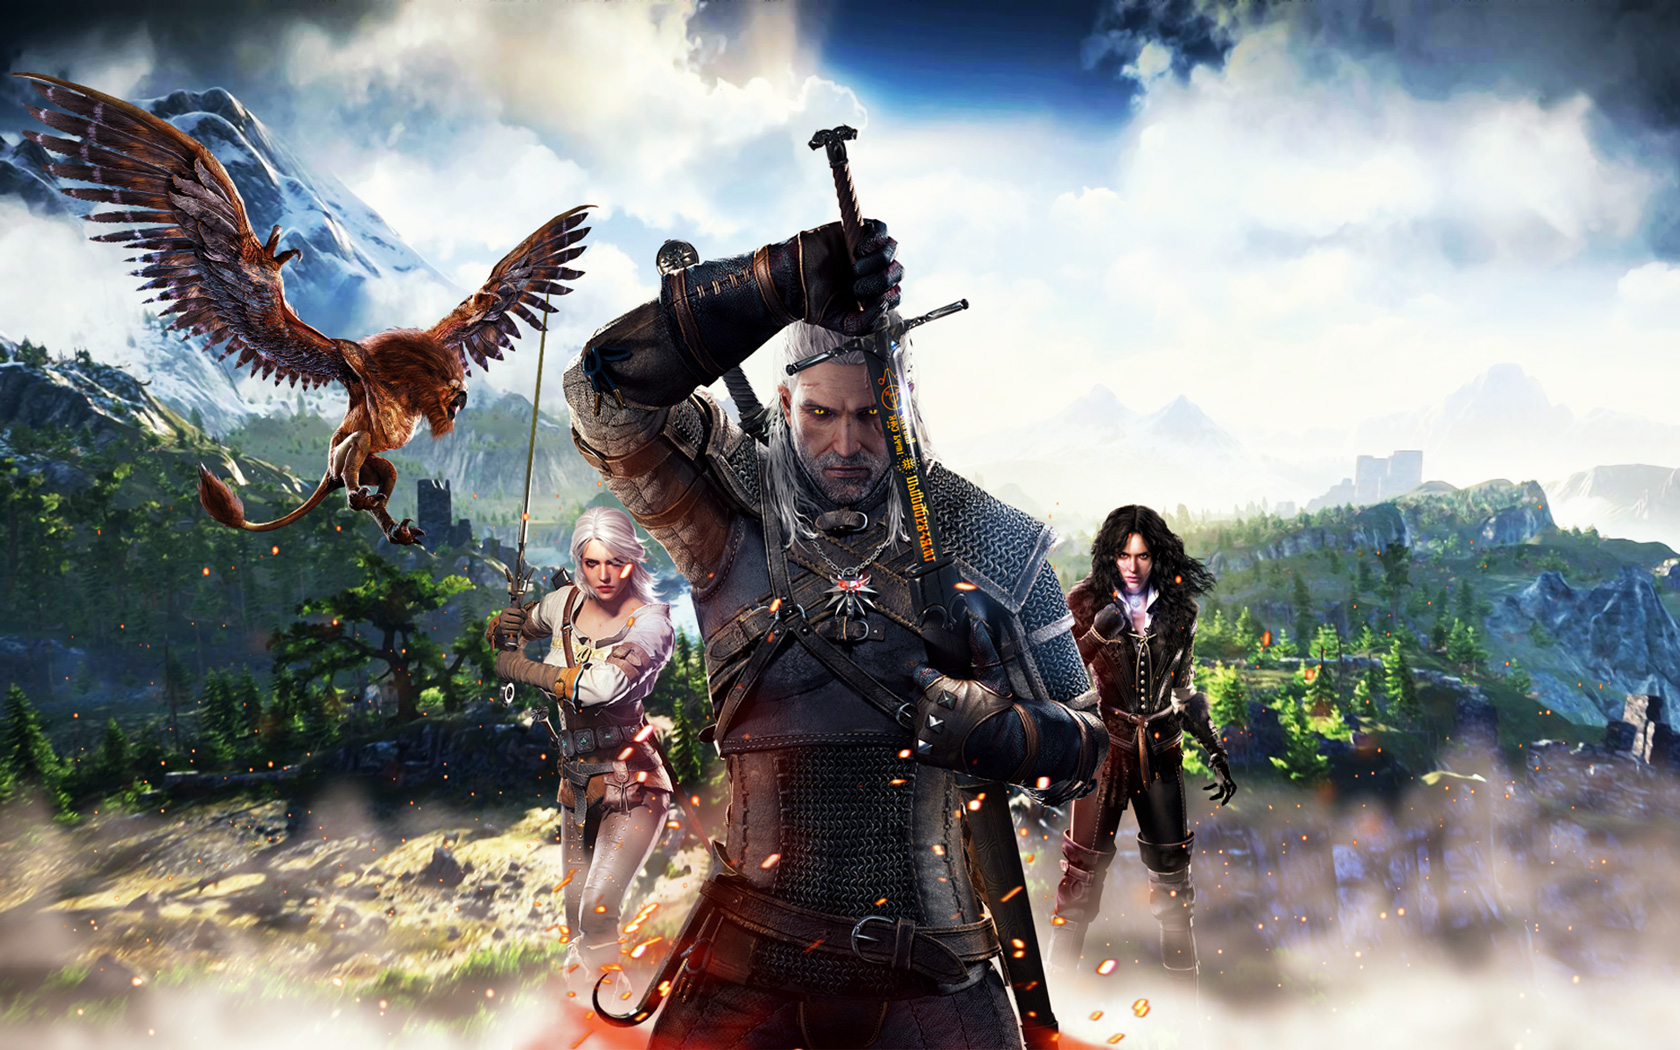 The Witcher 3 Wallpaper in 1680x1050